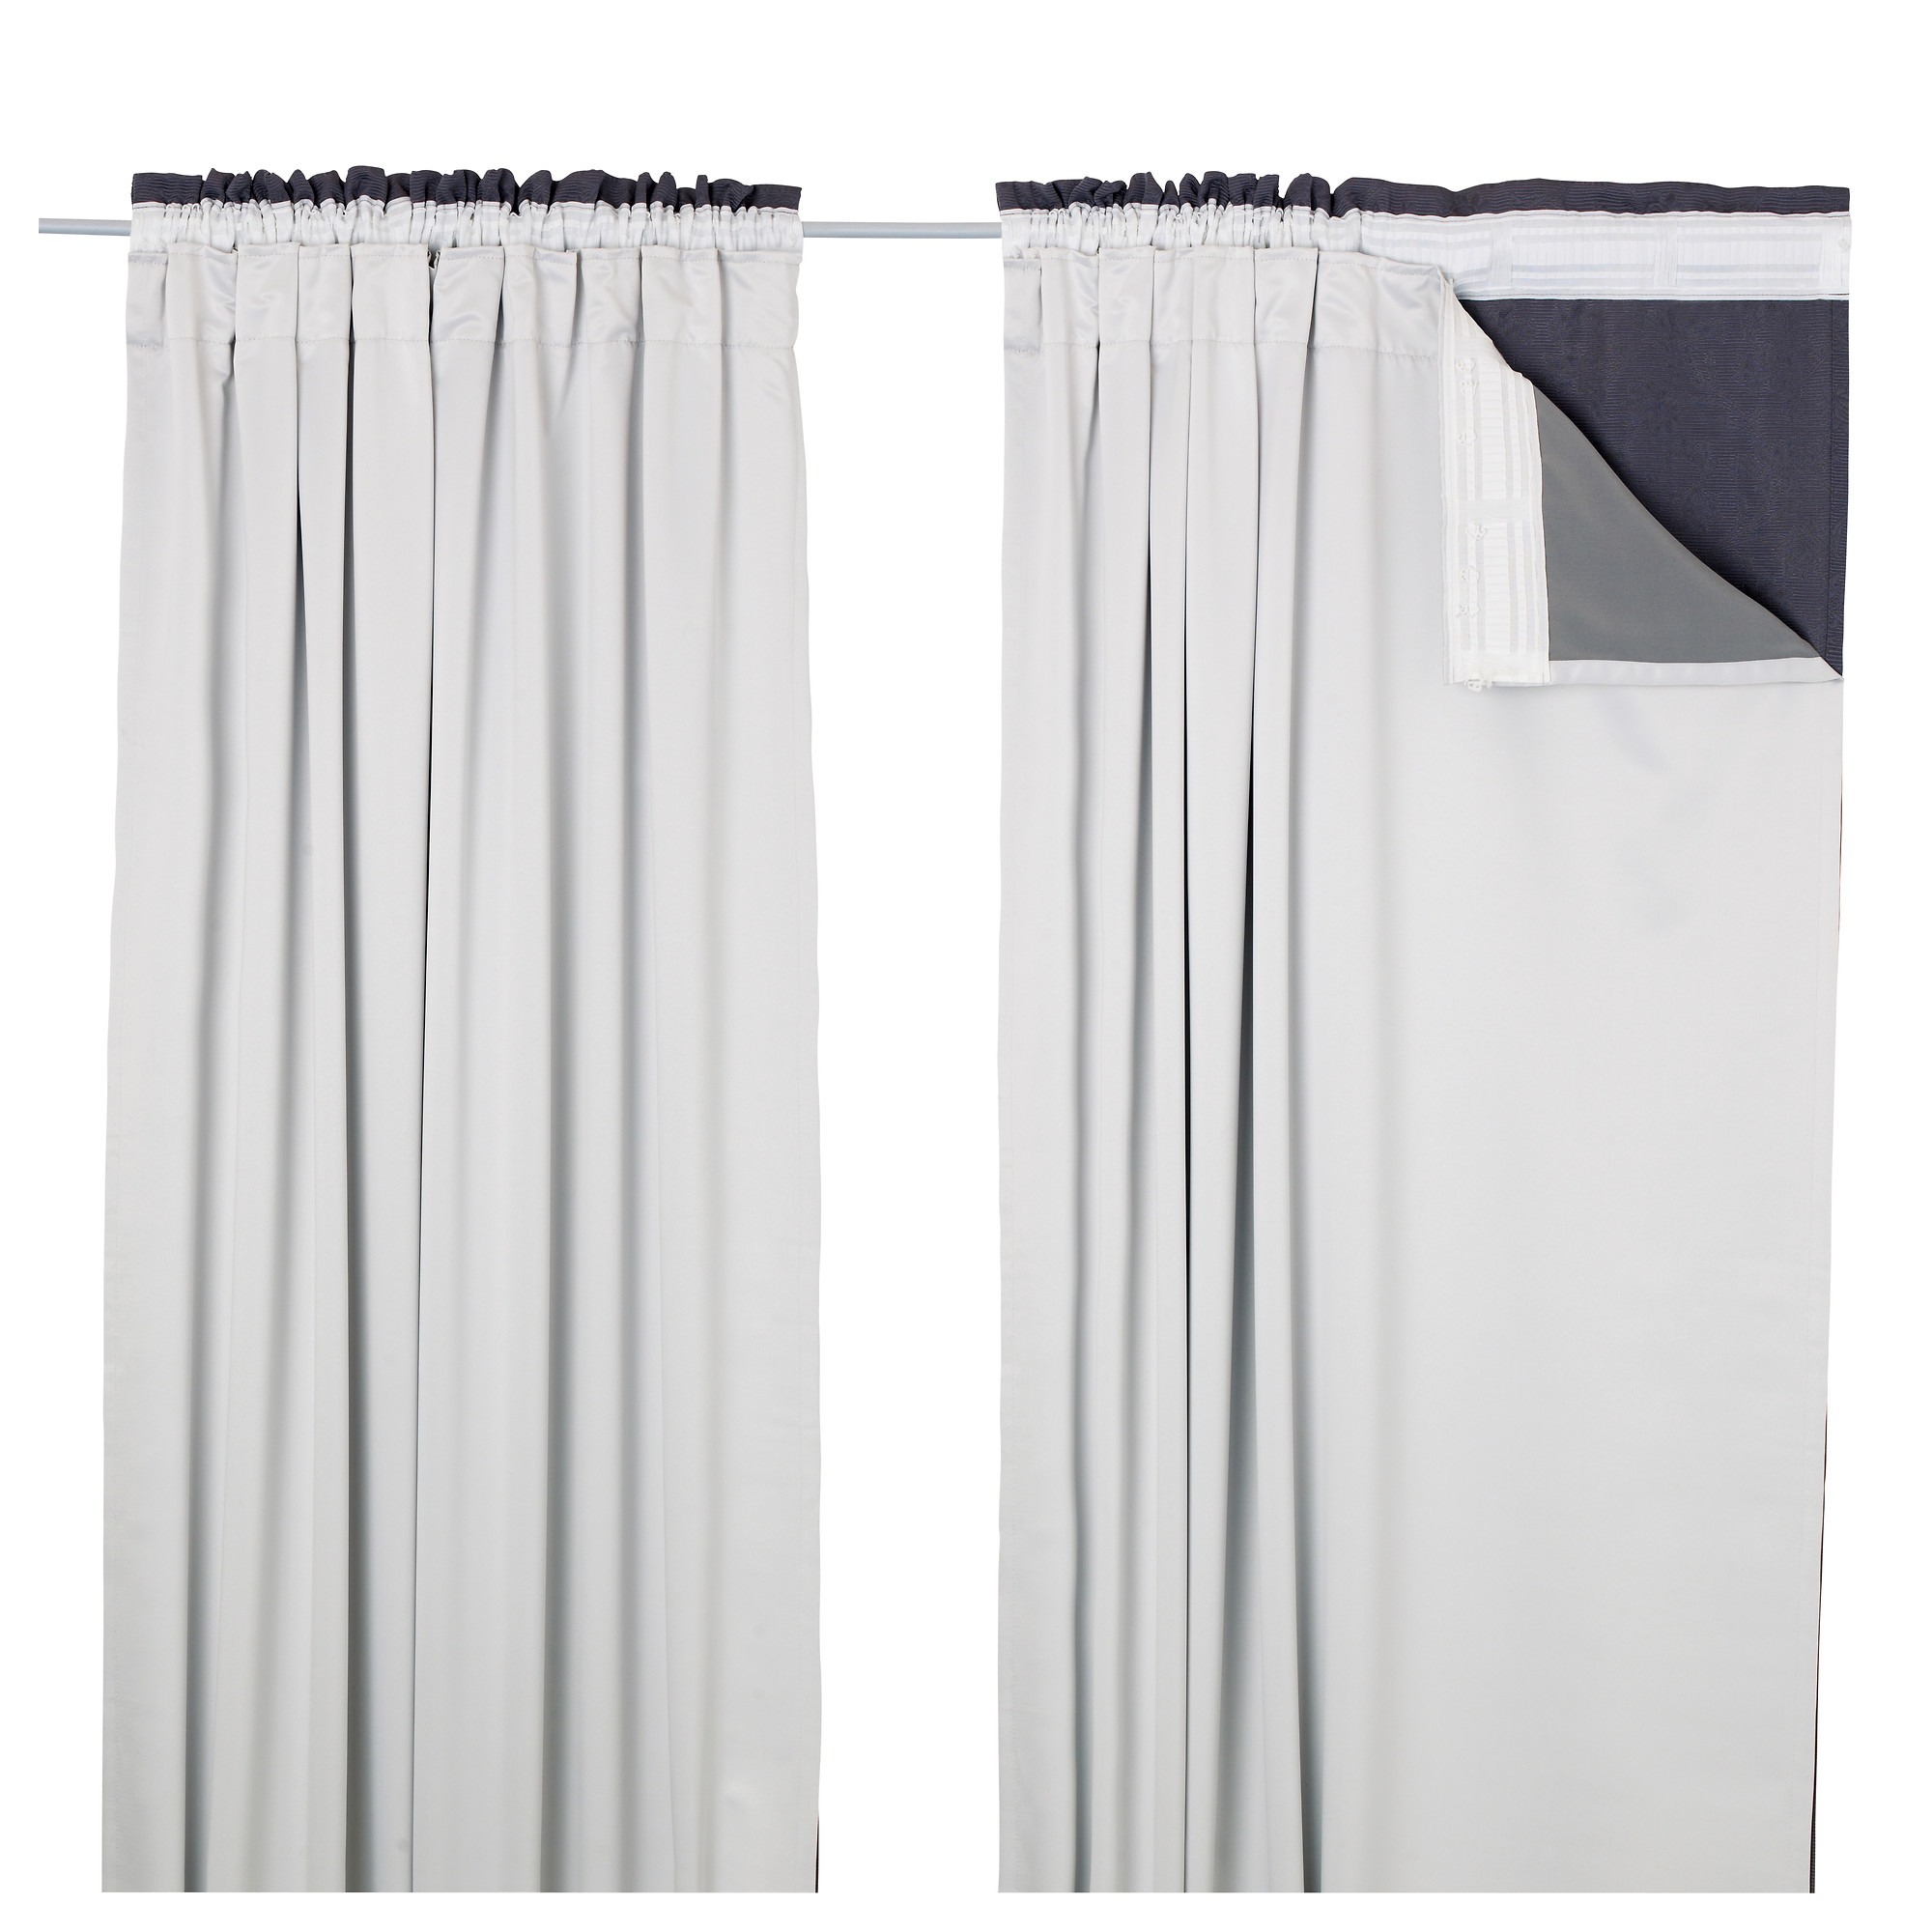 Black and white curtains bedroom - Glansn Va Curtain Liners 1 Pair Light Gray Length 114 Width 56